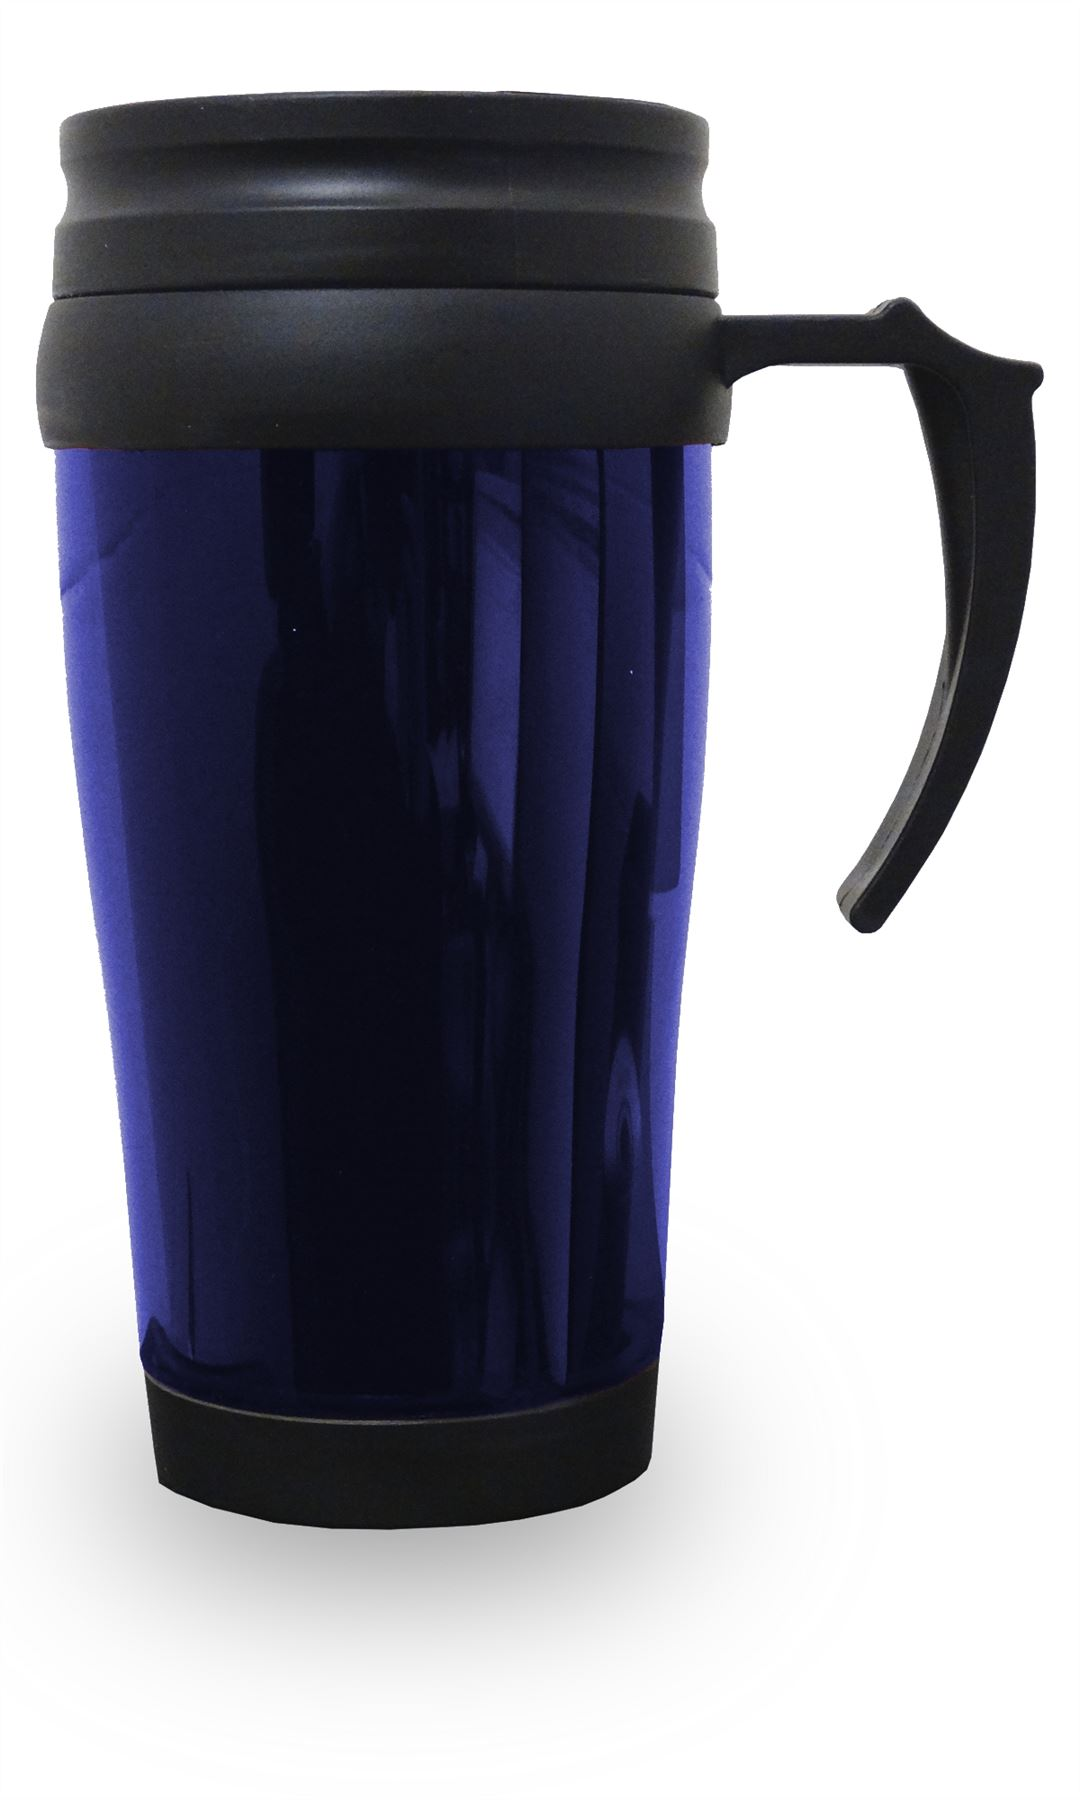 Insulated Thermal Travel Coffee Mug Flask Cup Removable Lid Keep Drink Warm Ebay